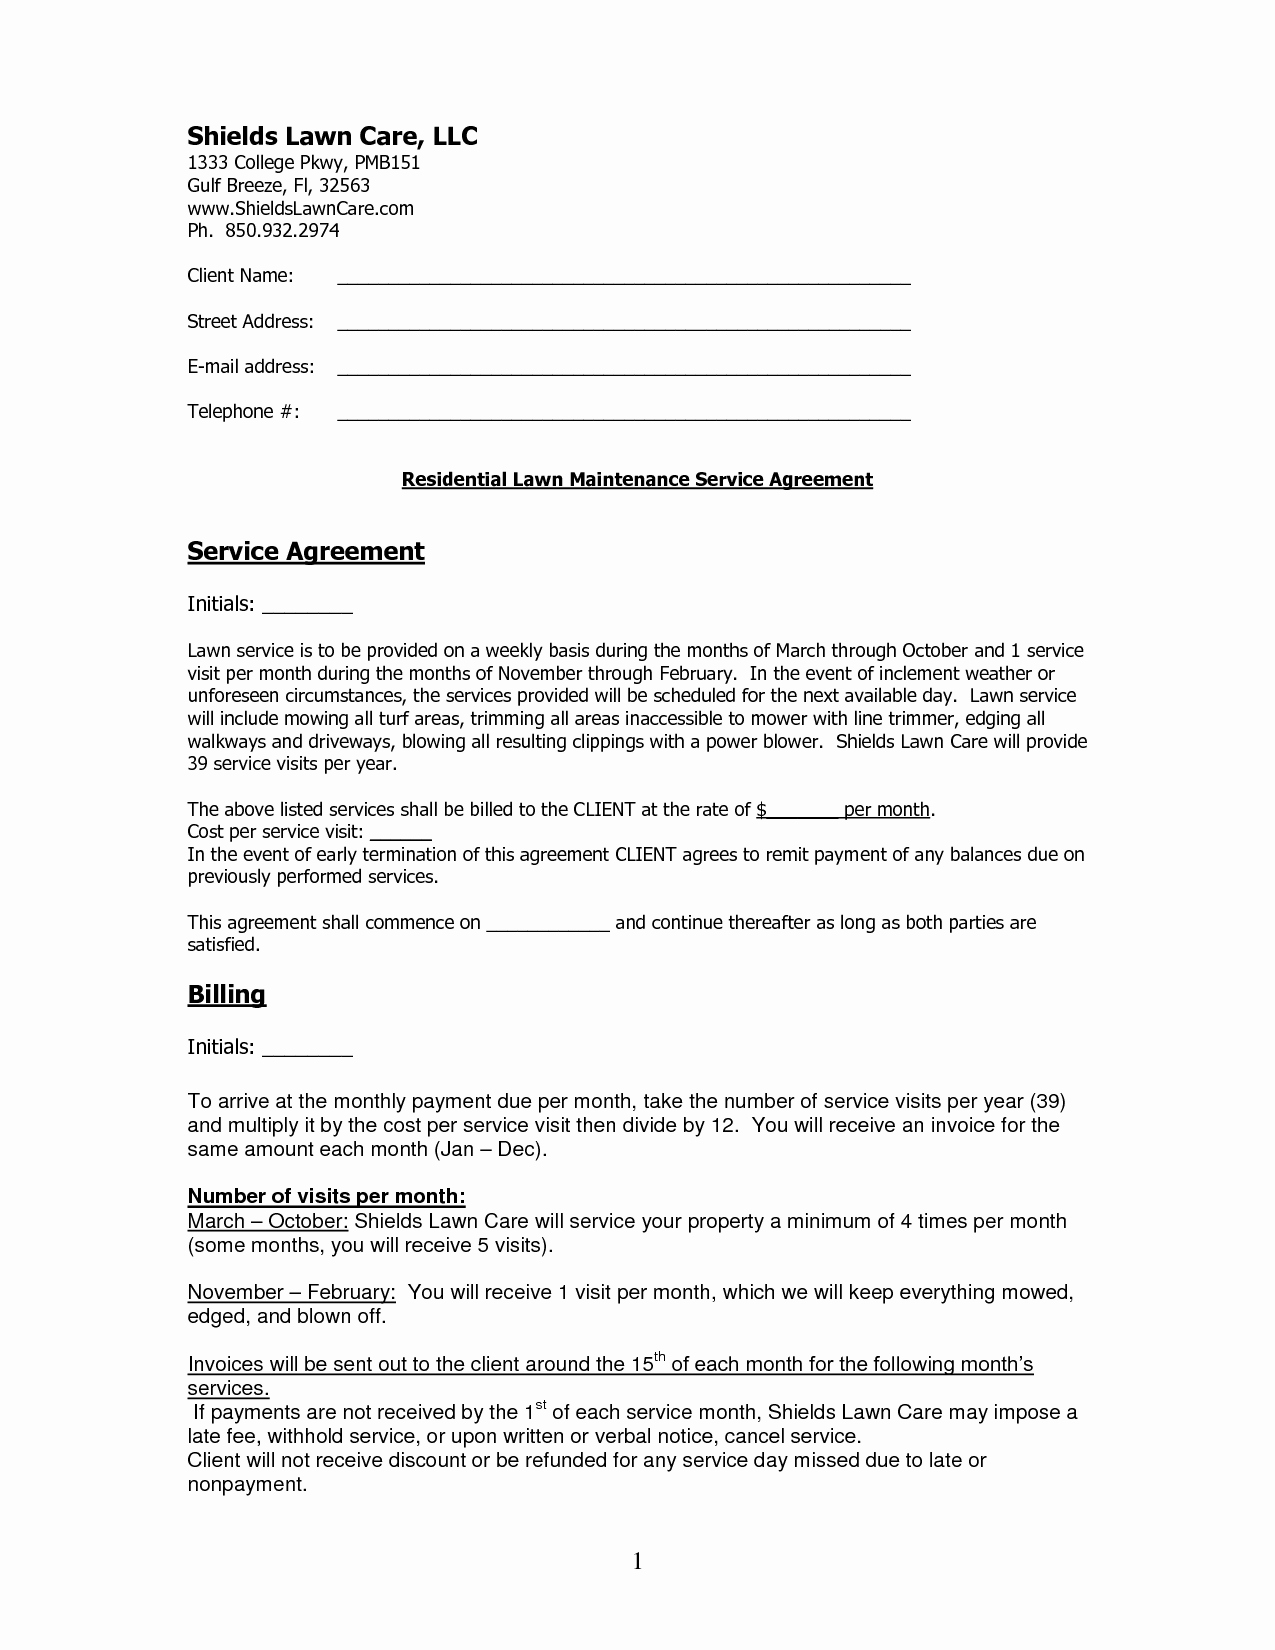 Lawn Service Contract Template New Contract Lawn Care Contract Template